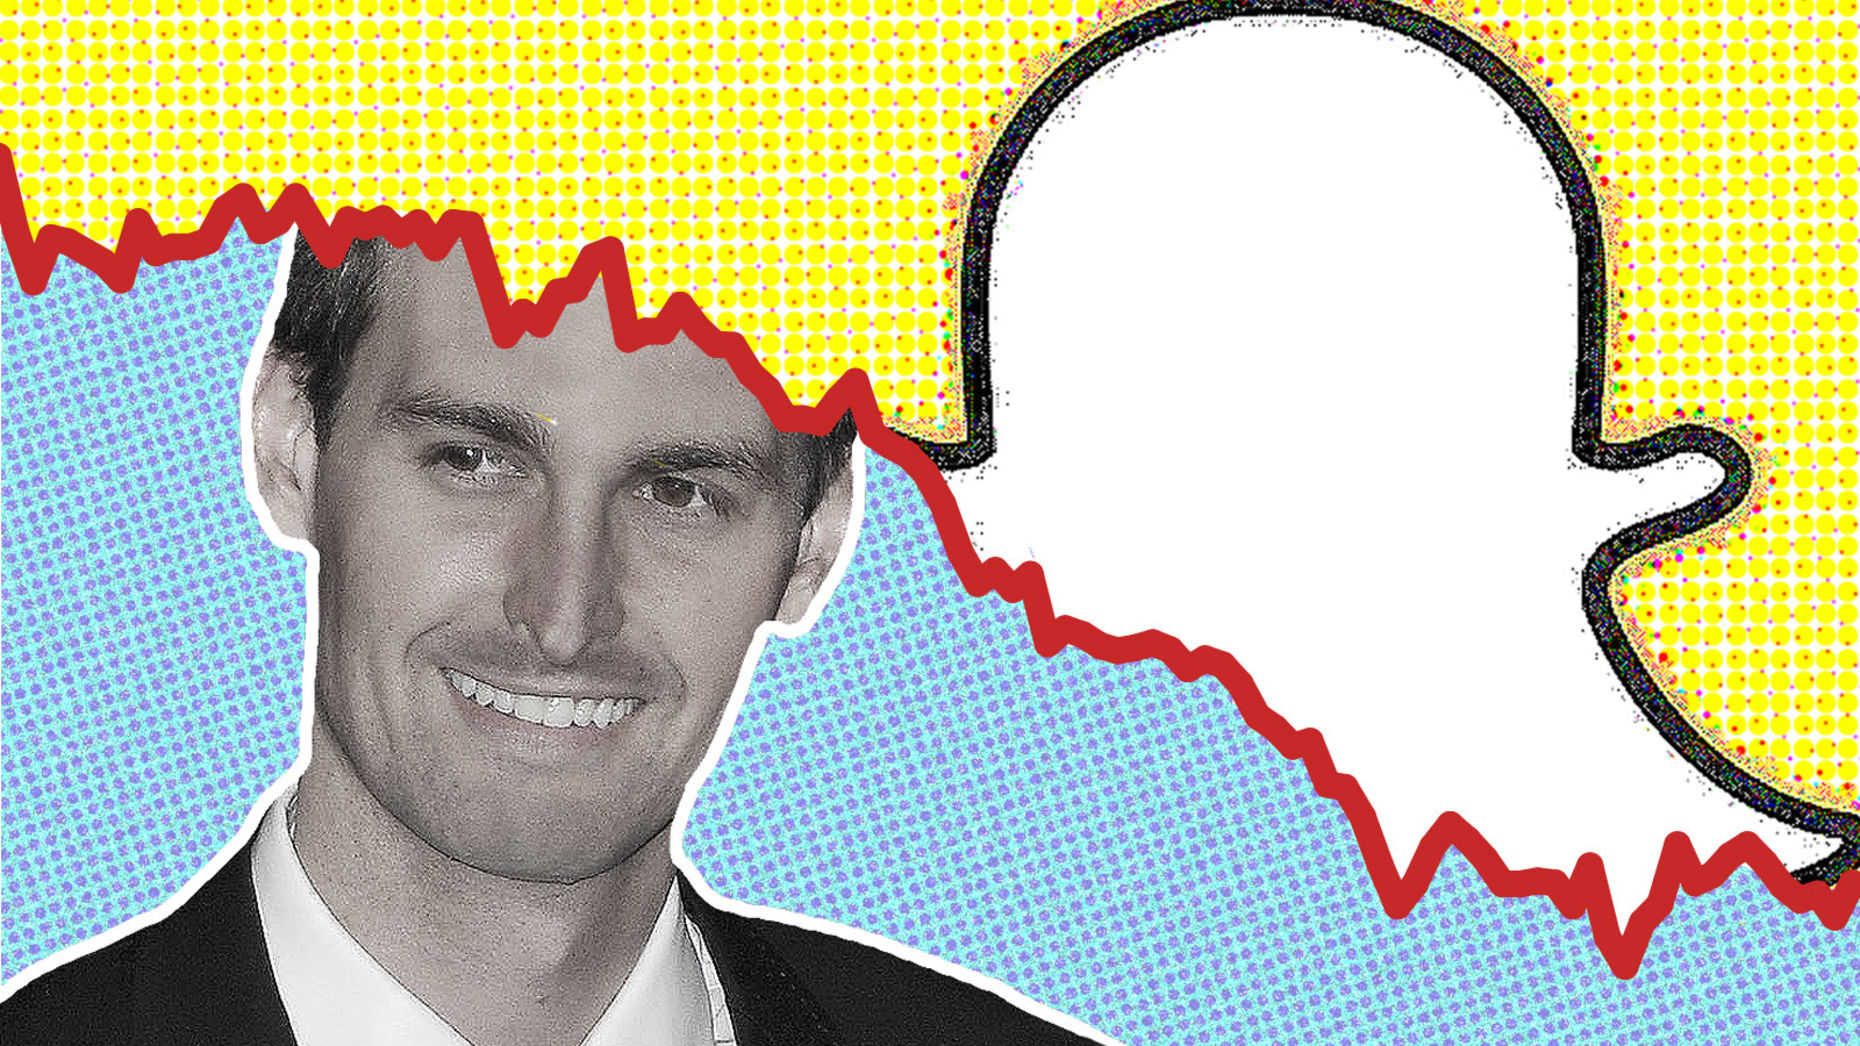 Snap's Spiegel Flies High Above Wall Street Worries